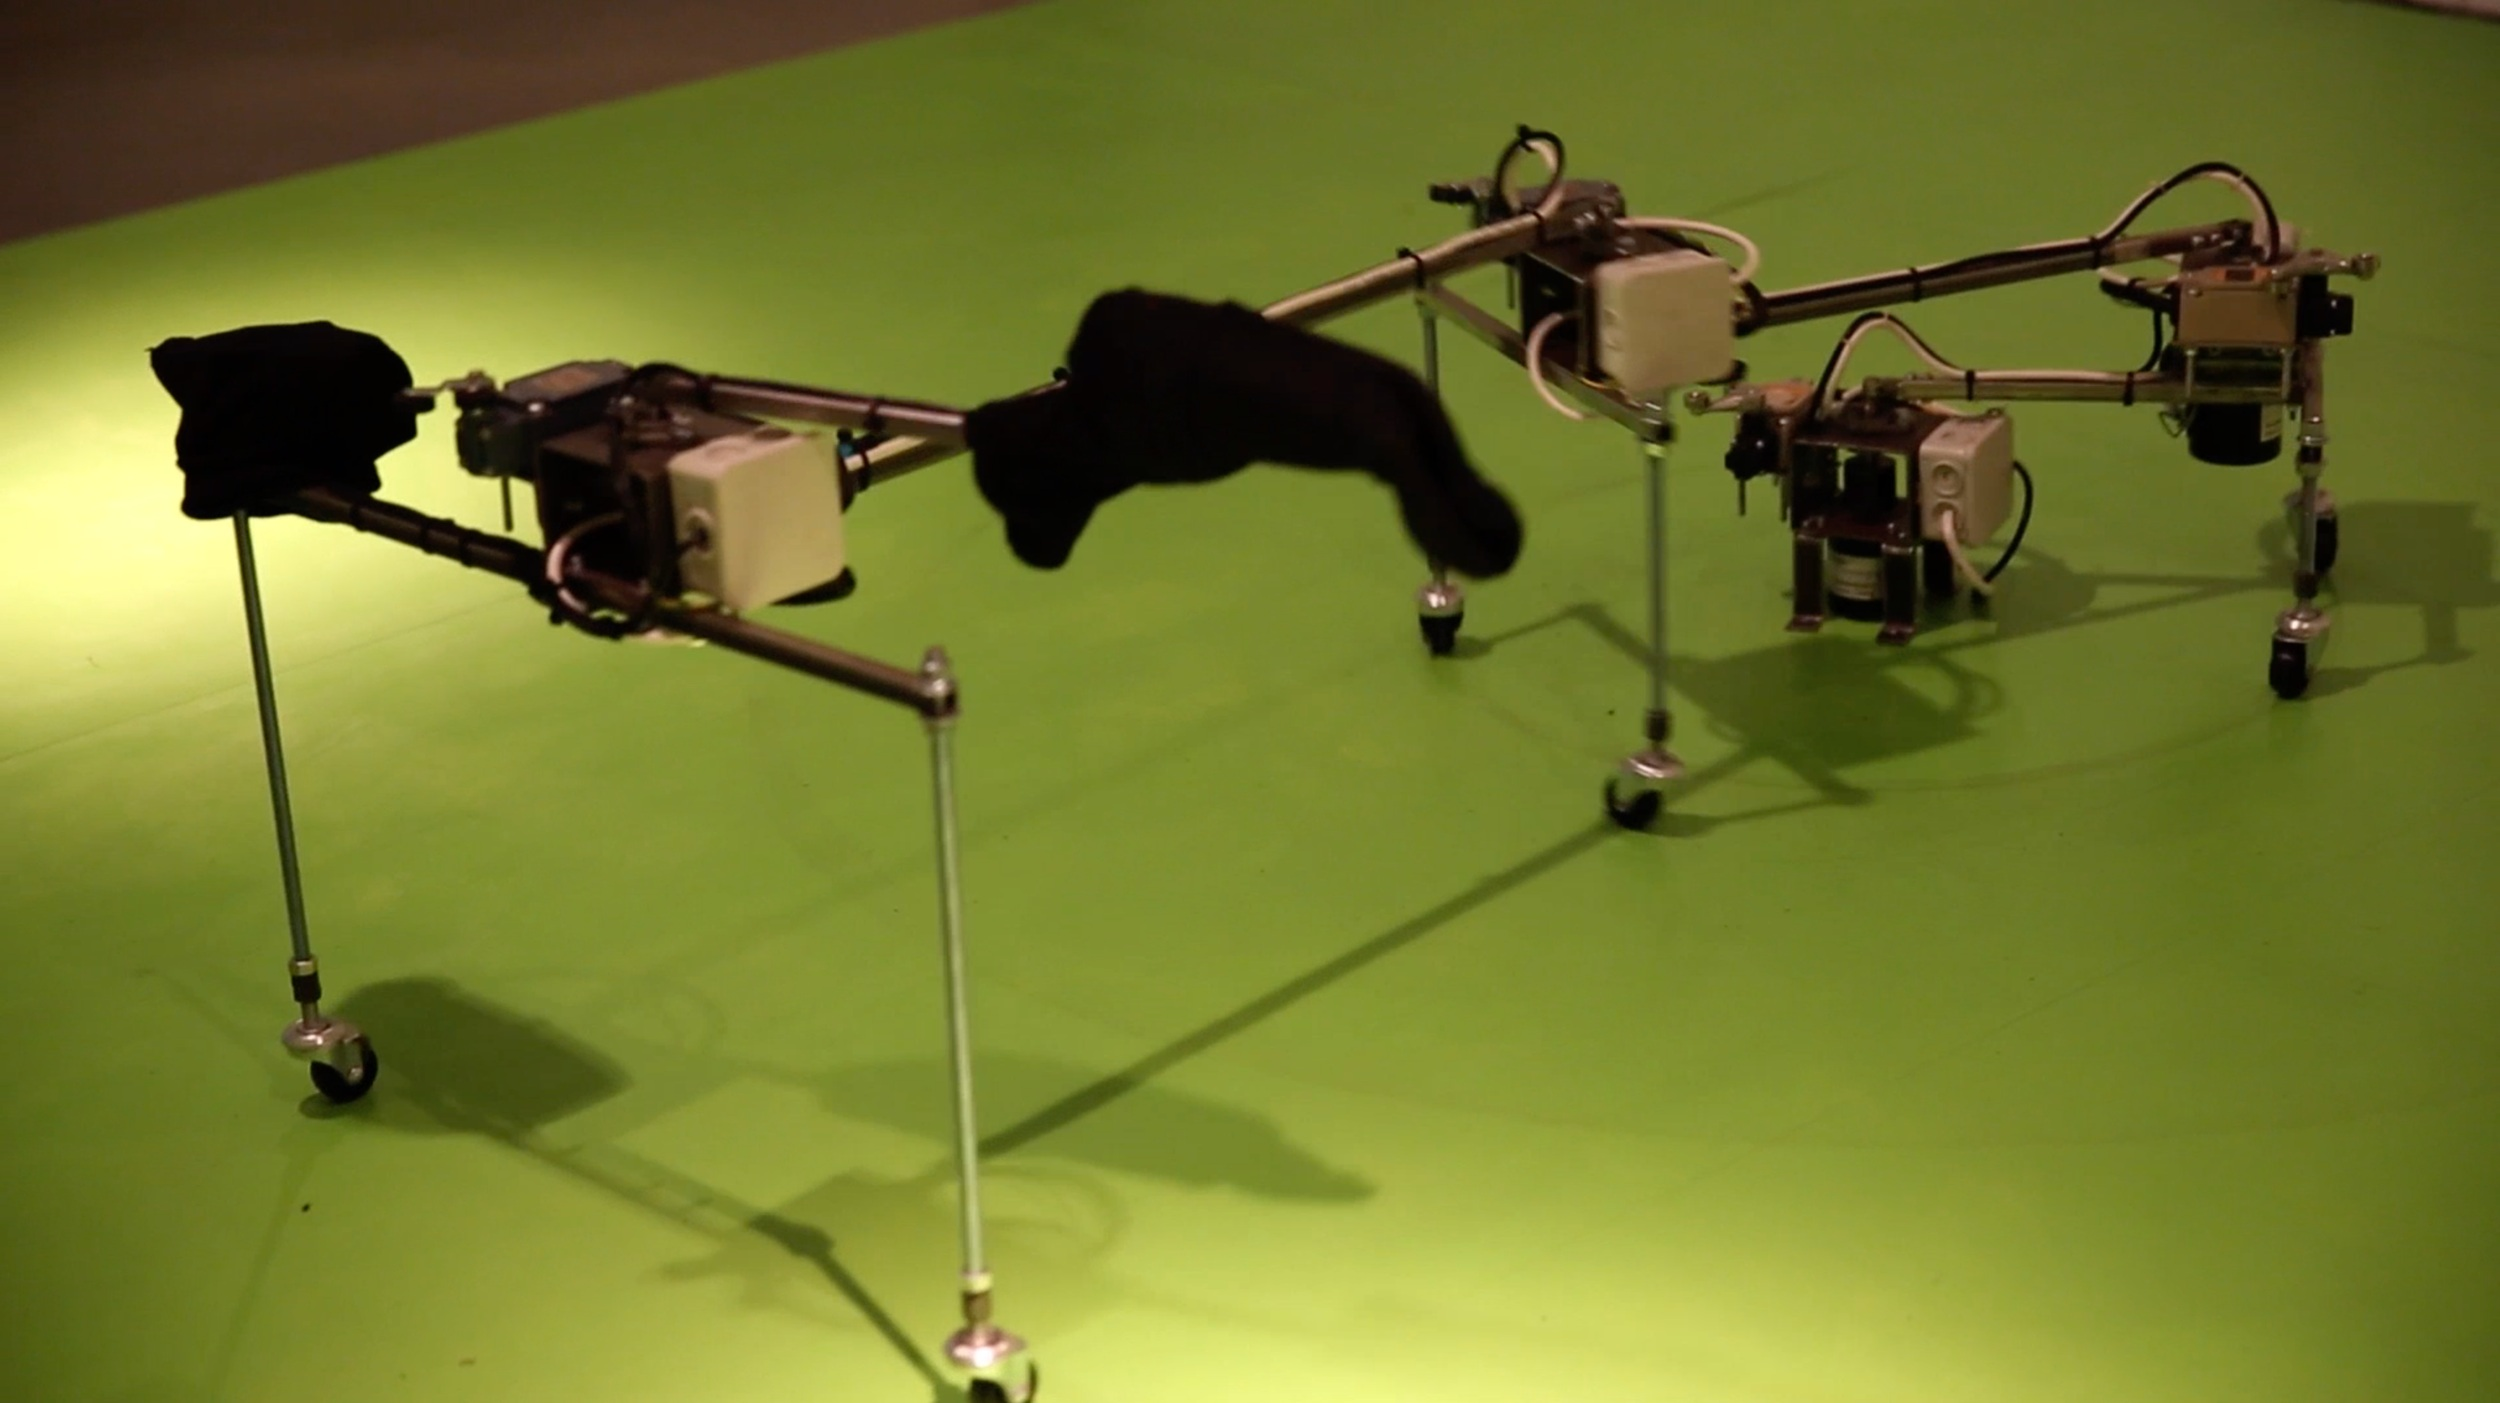 Image from Video Documentary of Borderline, Sound Machine, 2013